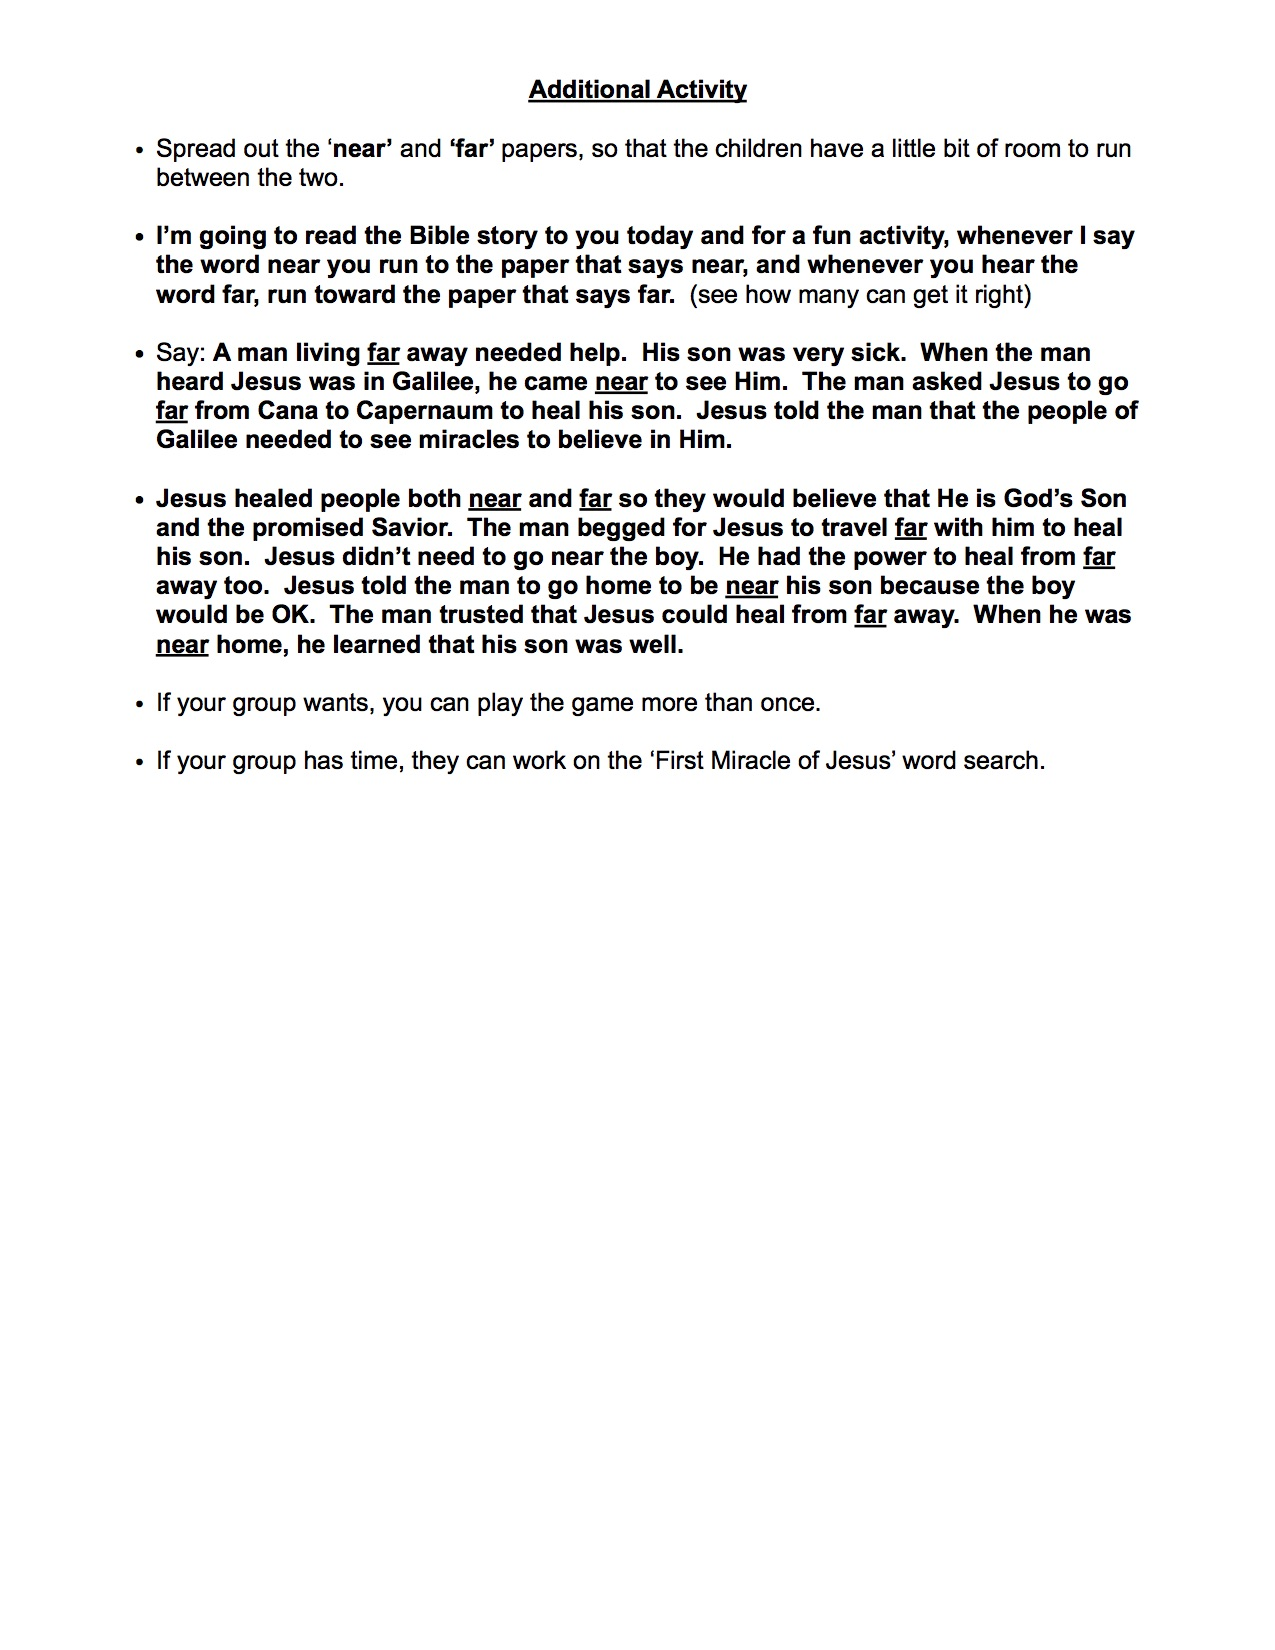 U26 L1 Jesus healed officials son AA 4th-5th pg 2